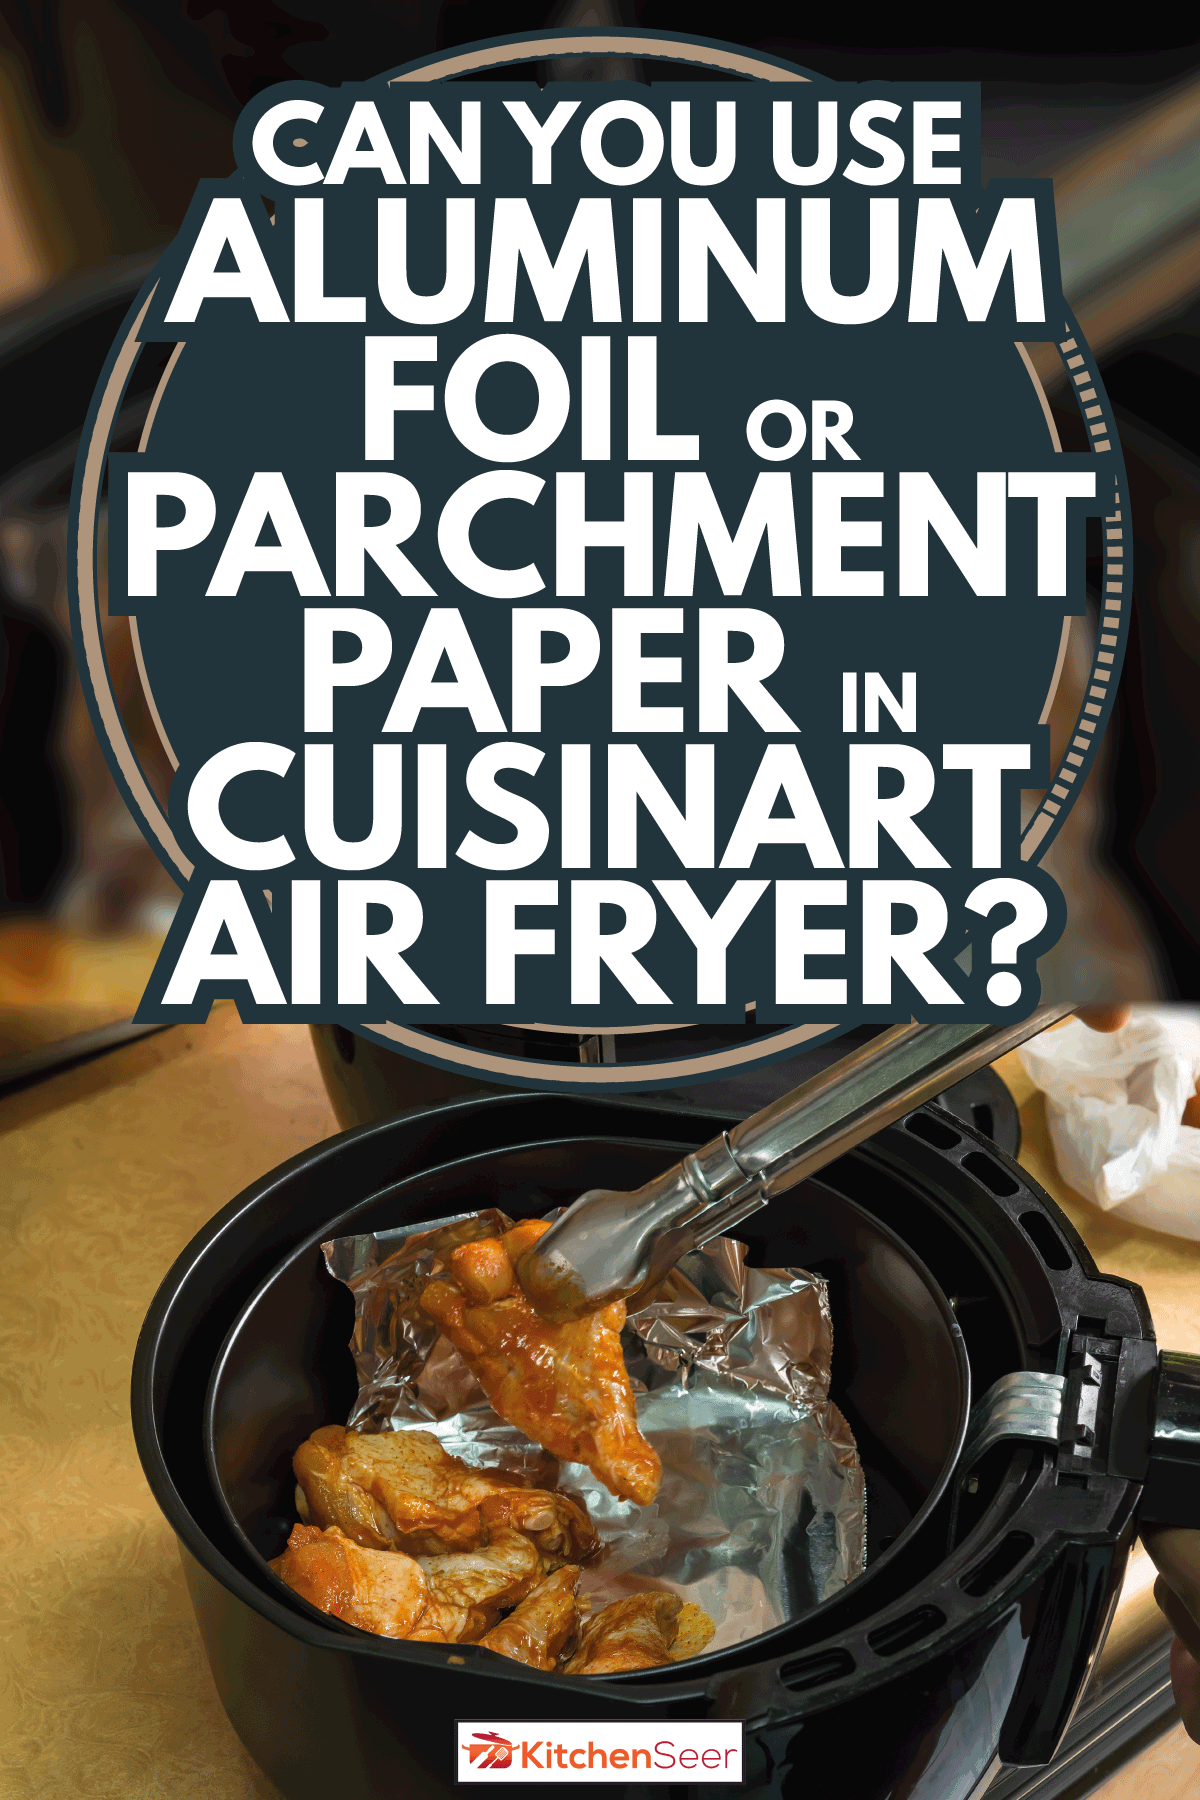 chicken legs being arranged inside an air fryer with aluminum foil. Can You Use Aluminum Foil Or Parchment Paper In Cuisinart Air Fryer